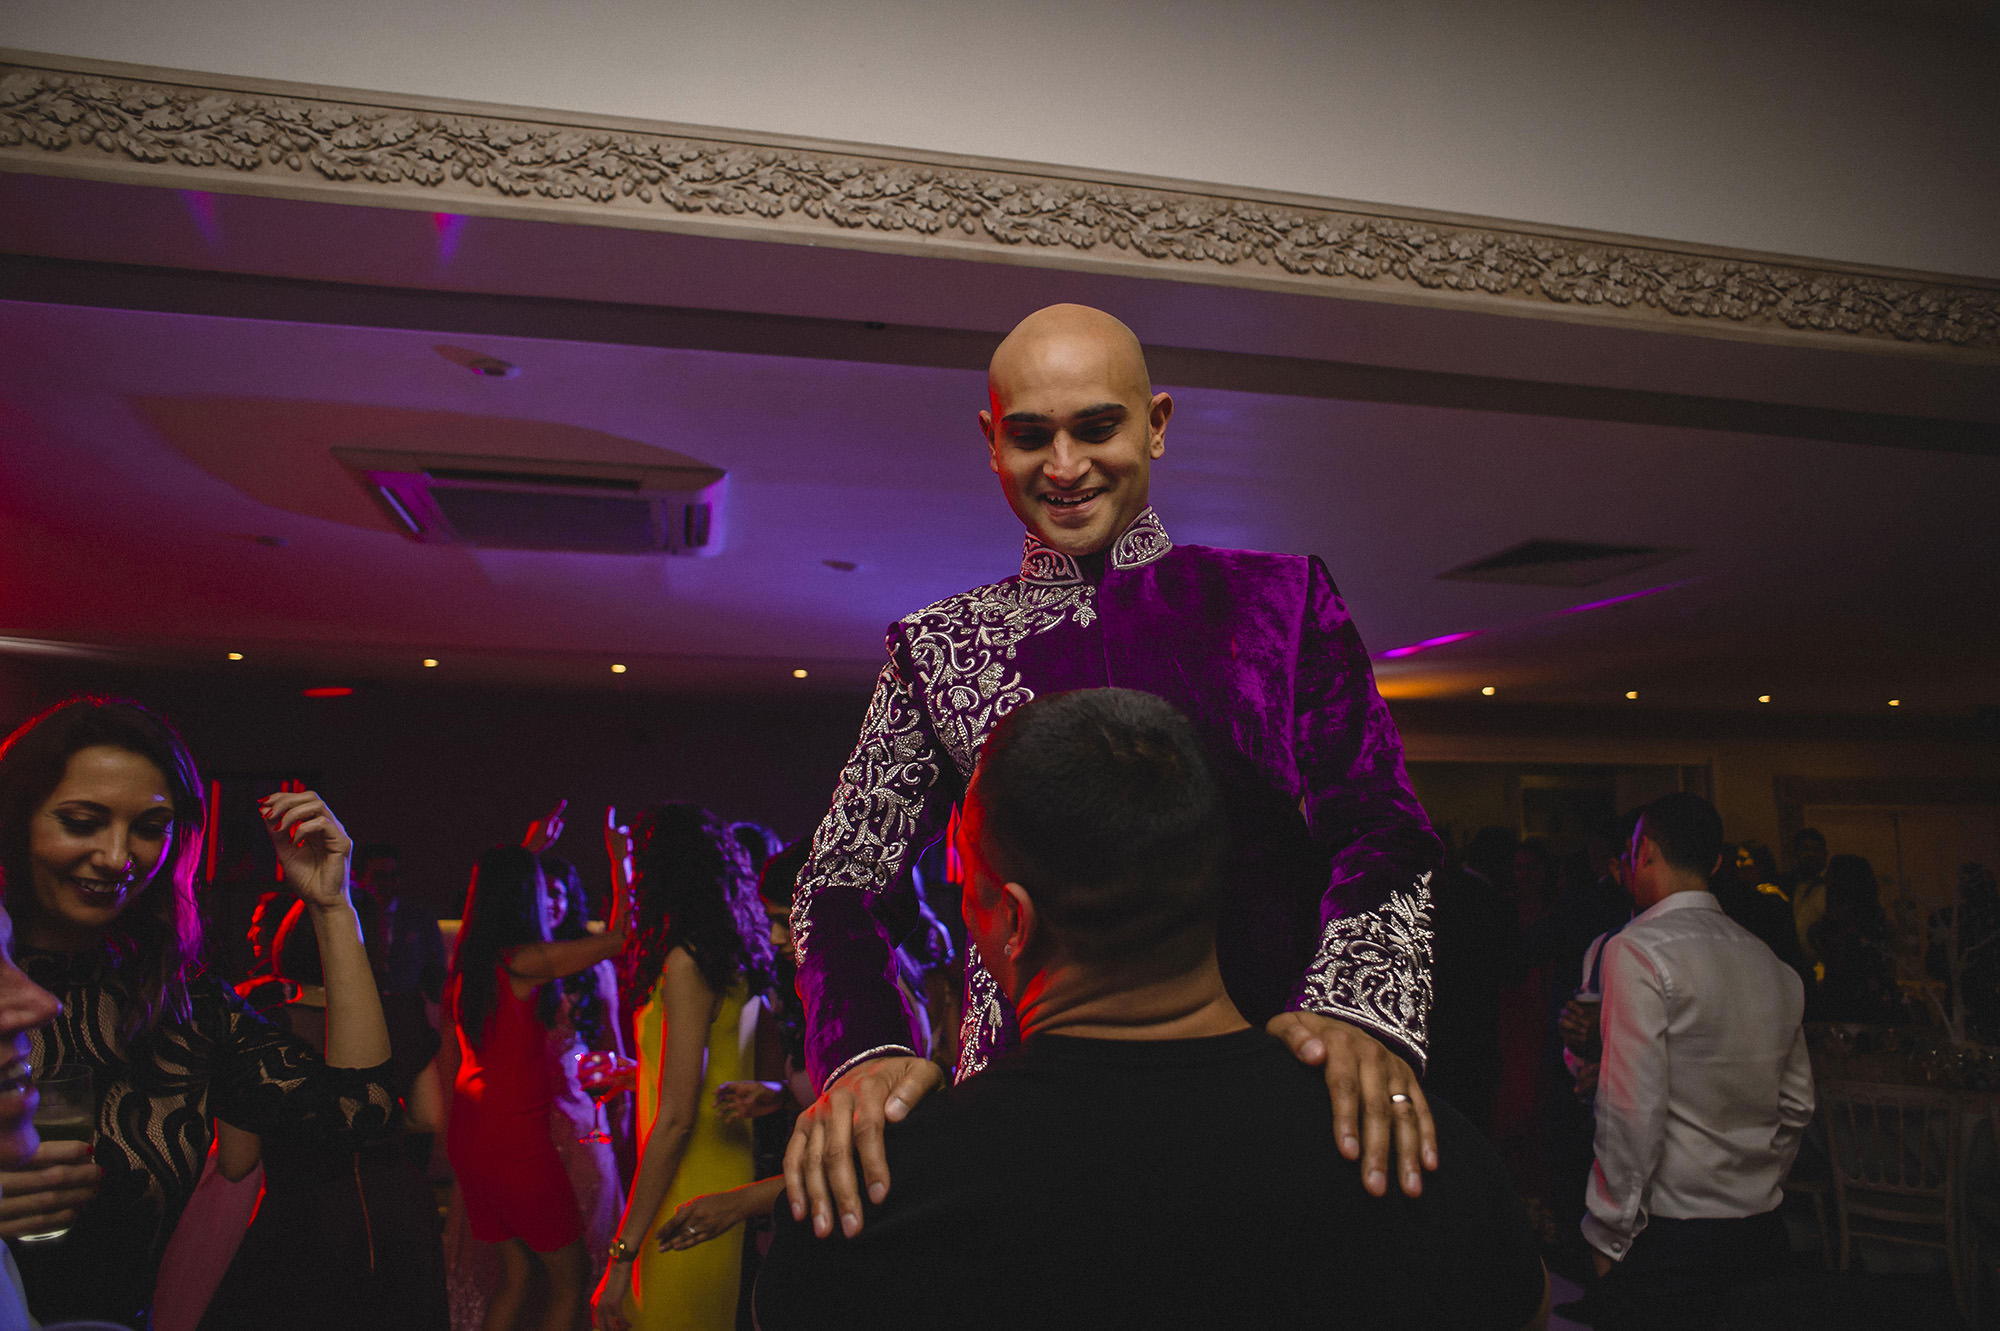 groom lifted by wedding guest at reception party